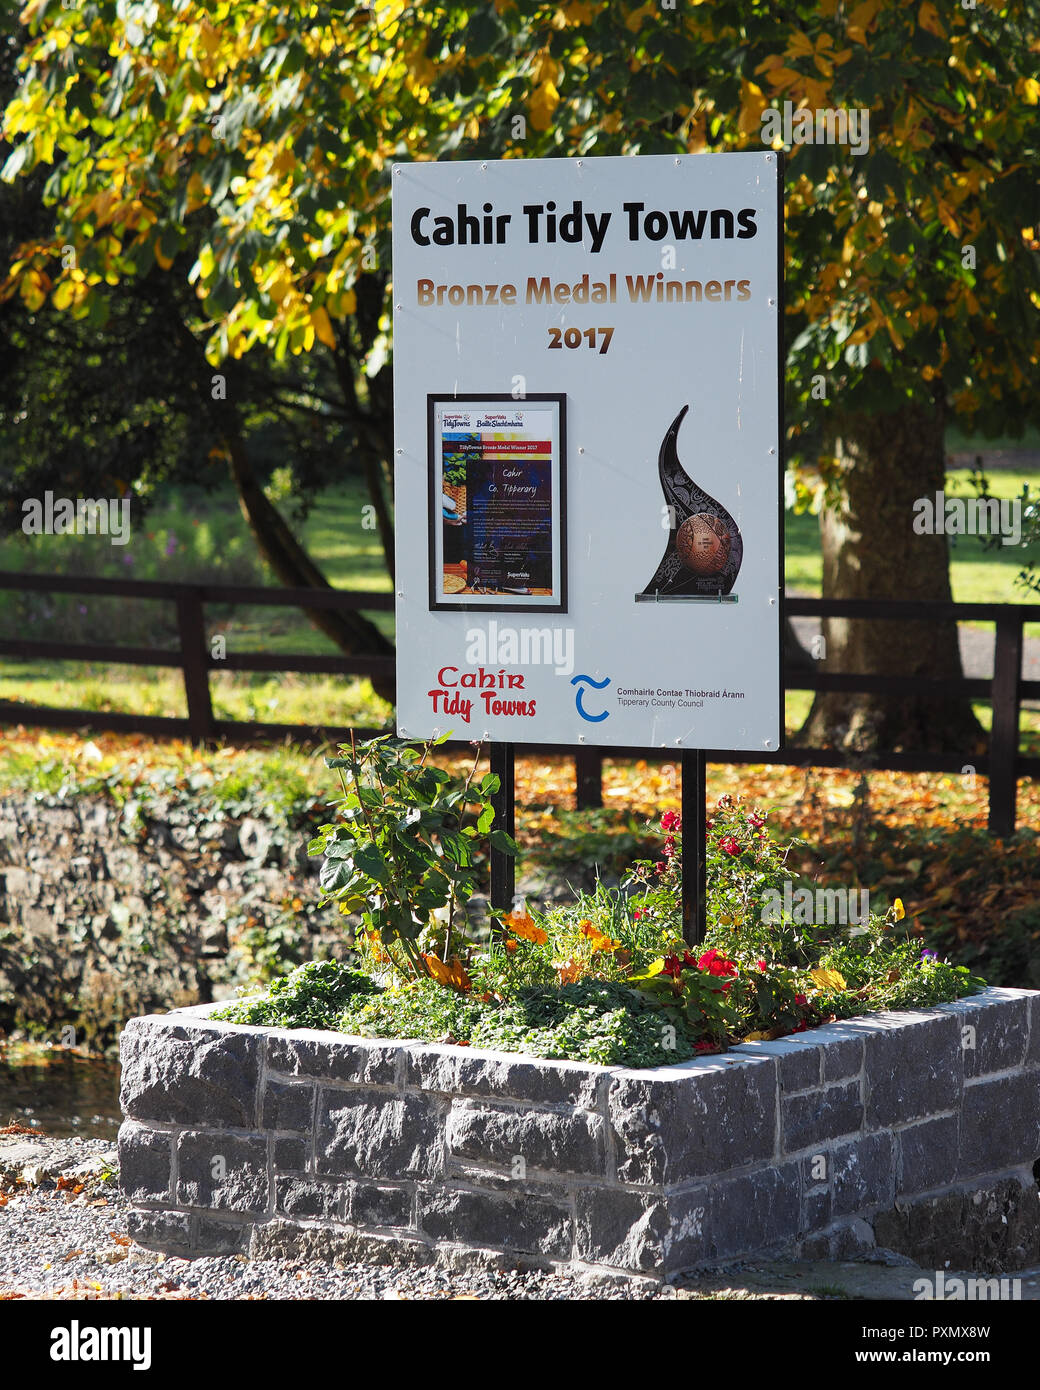 Sign beside Cahir Castle in Tipperary, Ireland showing that Cahir town was a bronze medal winner in the tidy towns competition 2017. Cahir, Tipperary, - Stock Image